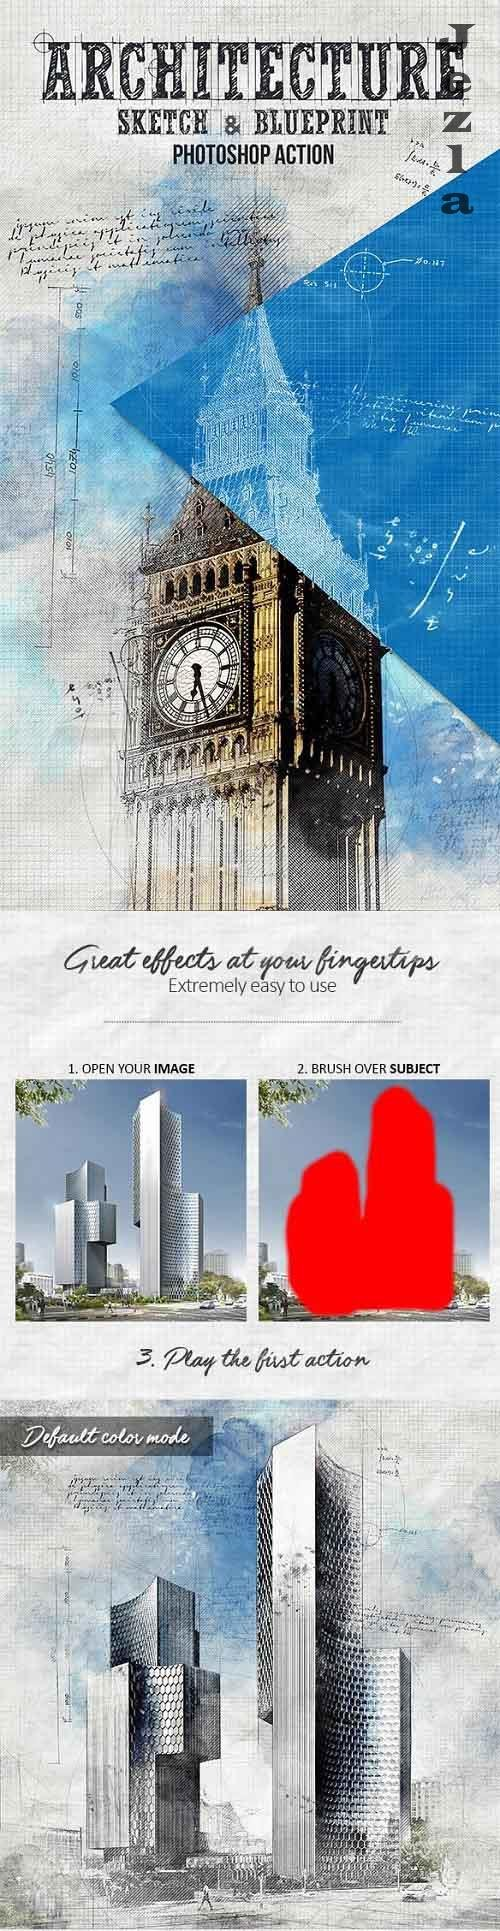 Architecture Sketch and Blueprint Photoshop Action 19872456